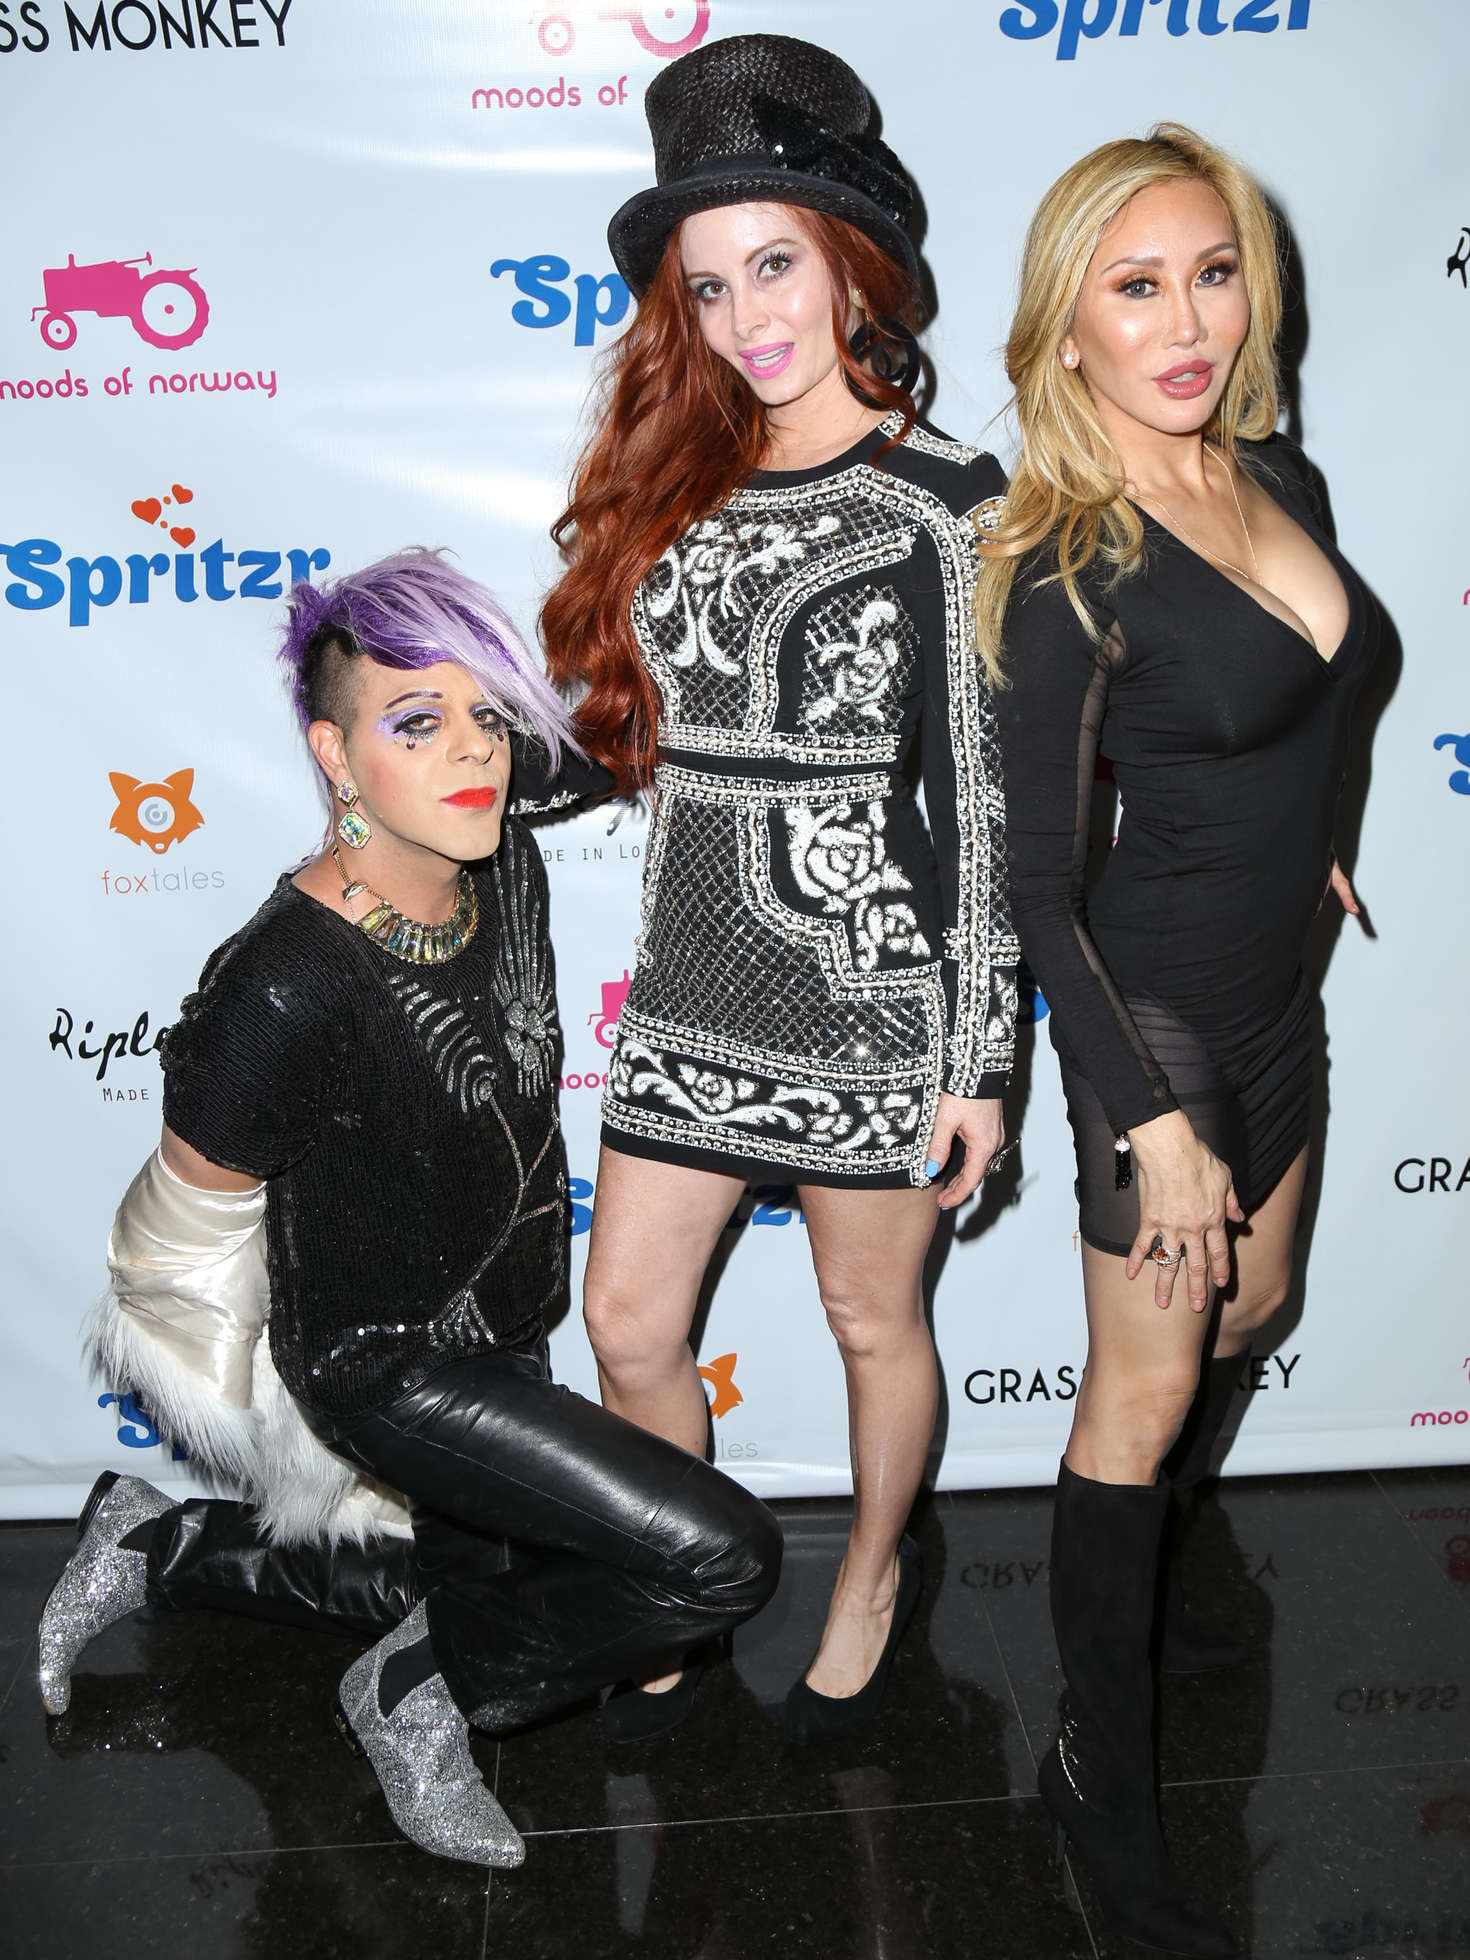 Phoebe Price Love Ball at Sofitel Hotel in Beverly Hills